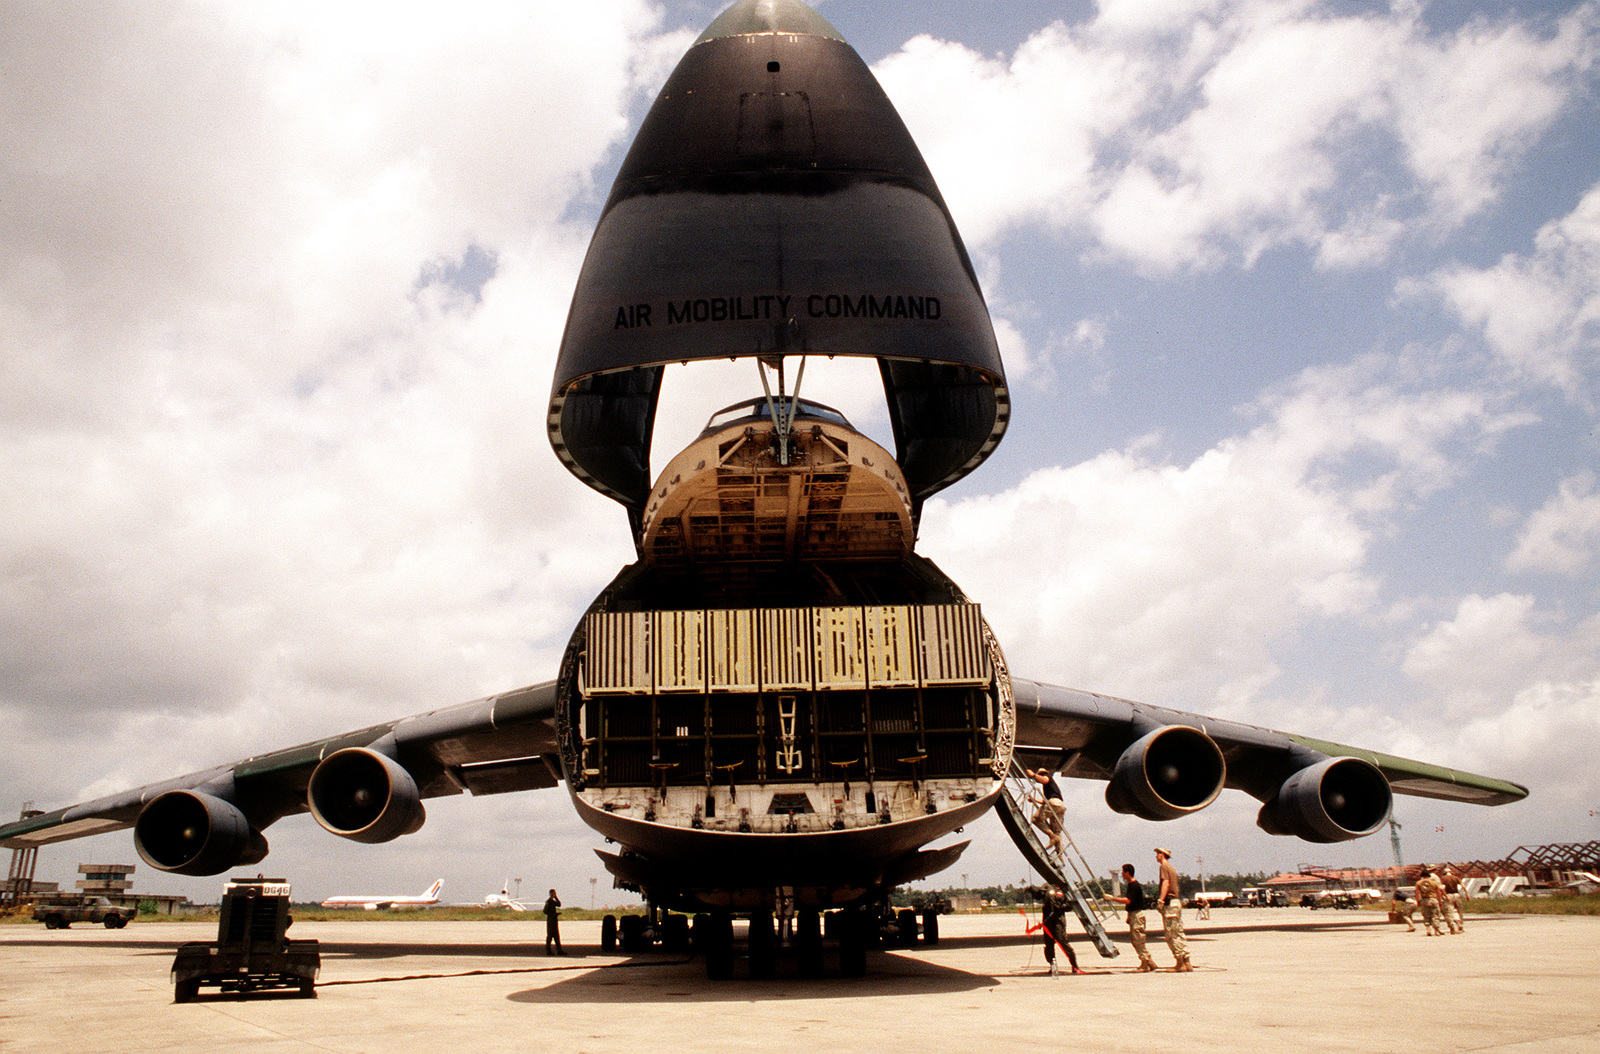 A head on view of a US Air Force C-5 Galaxy from the 3rd Airlift Squadron, Dover Air Force Base, Del., as it prepares to unload its cargo on the ramp of the airport. US Air Force aircraft are bringing in material and equipment to support the withdrawal of United Nations peacekeepers